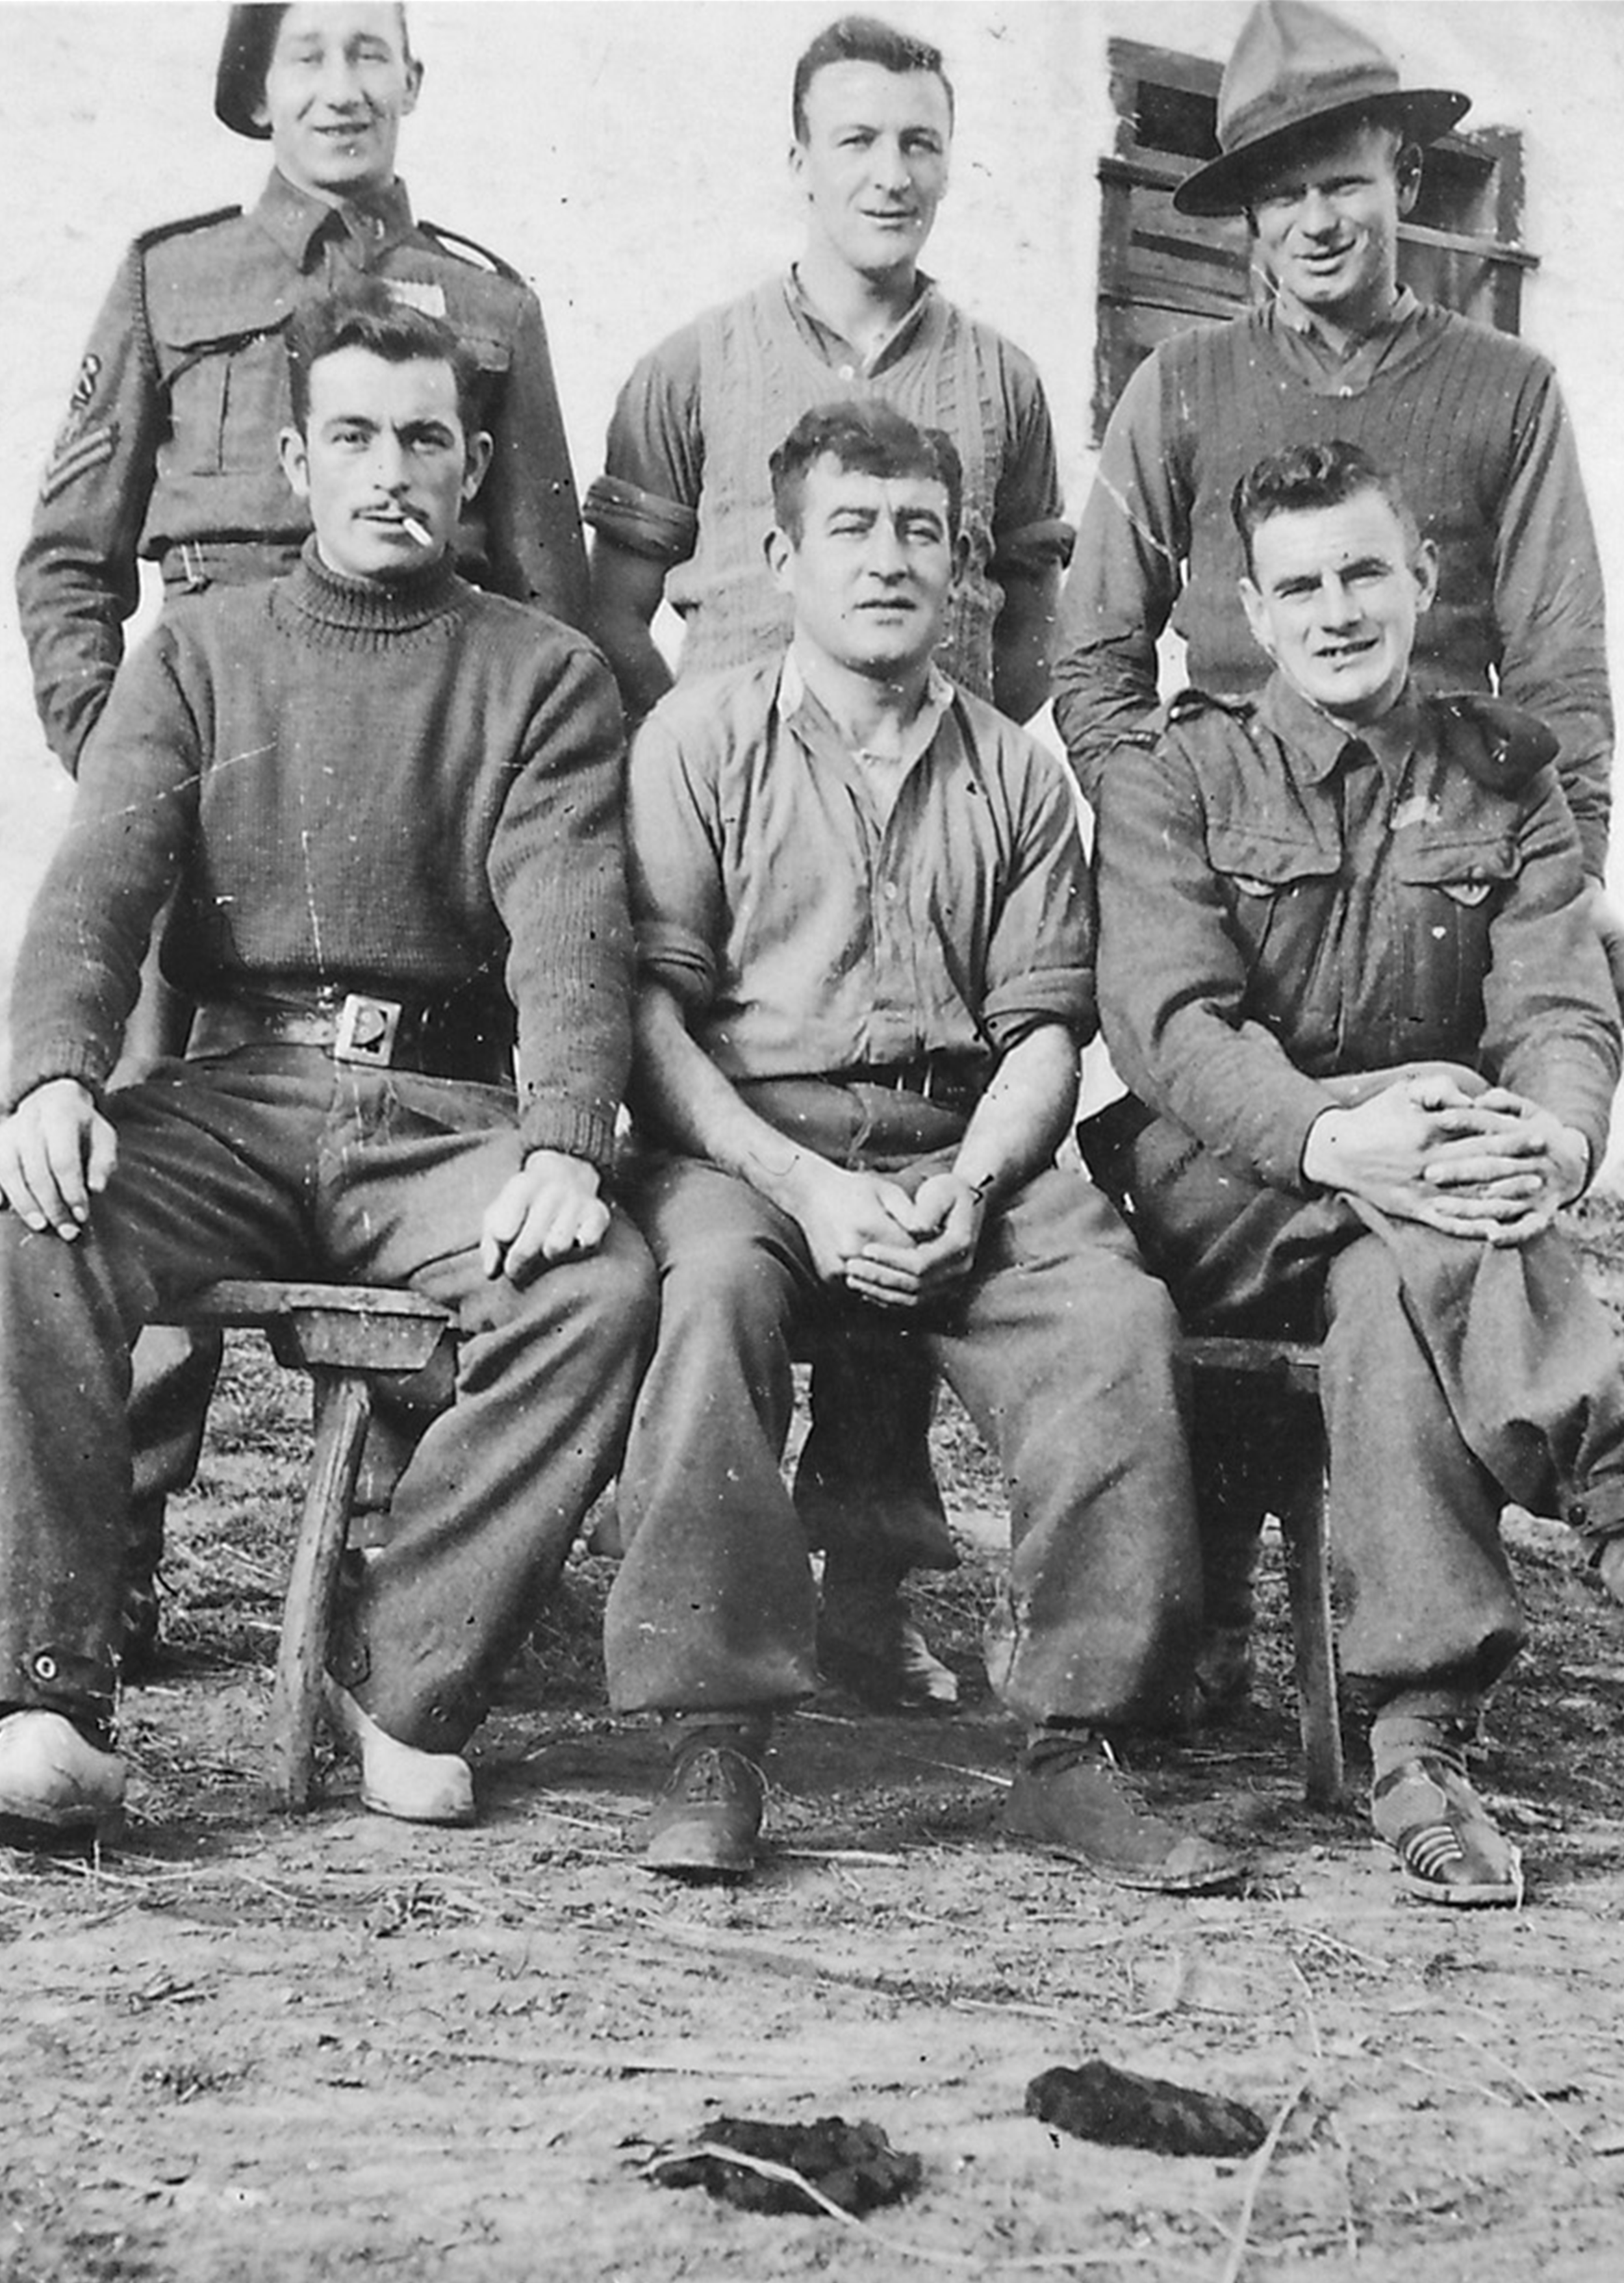 - Bruce Murray (back row, middle) with a Group of POW Farm Workers.